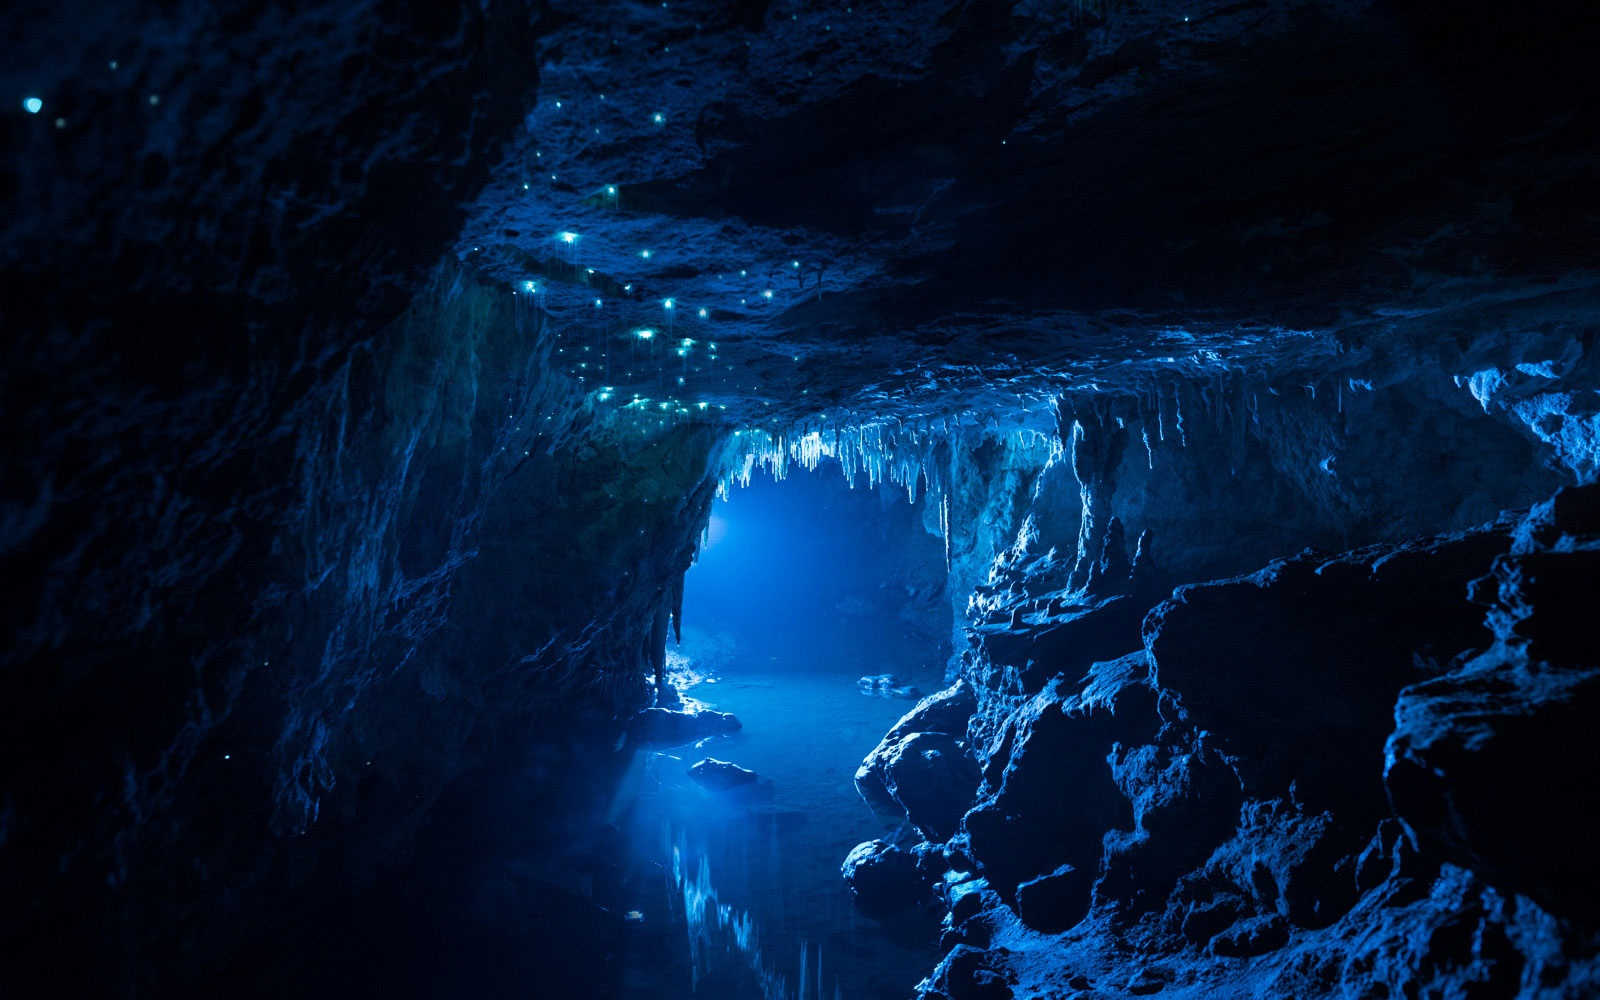 In Photos: New Zealand's Glow Worm-Covered Limestone Caves